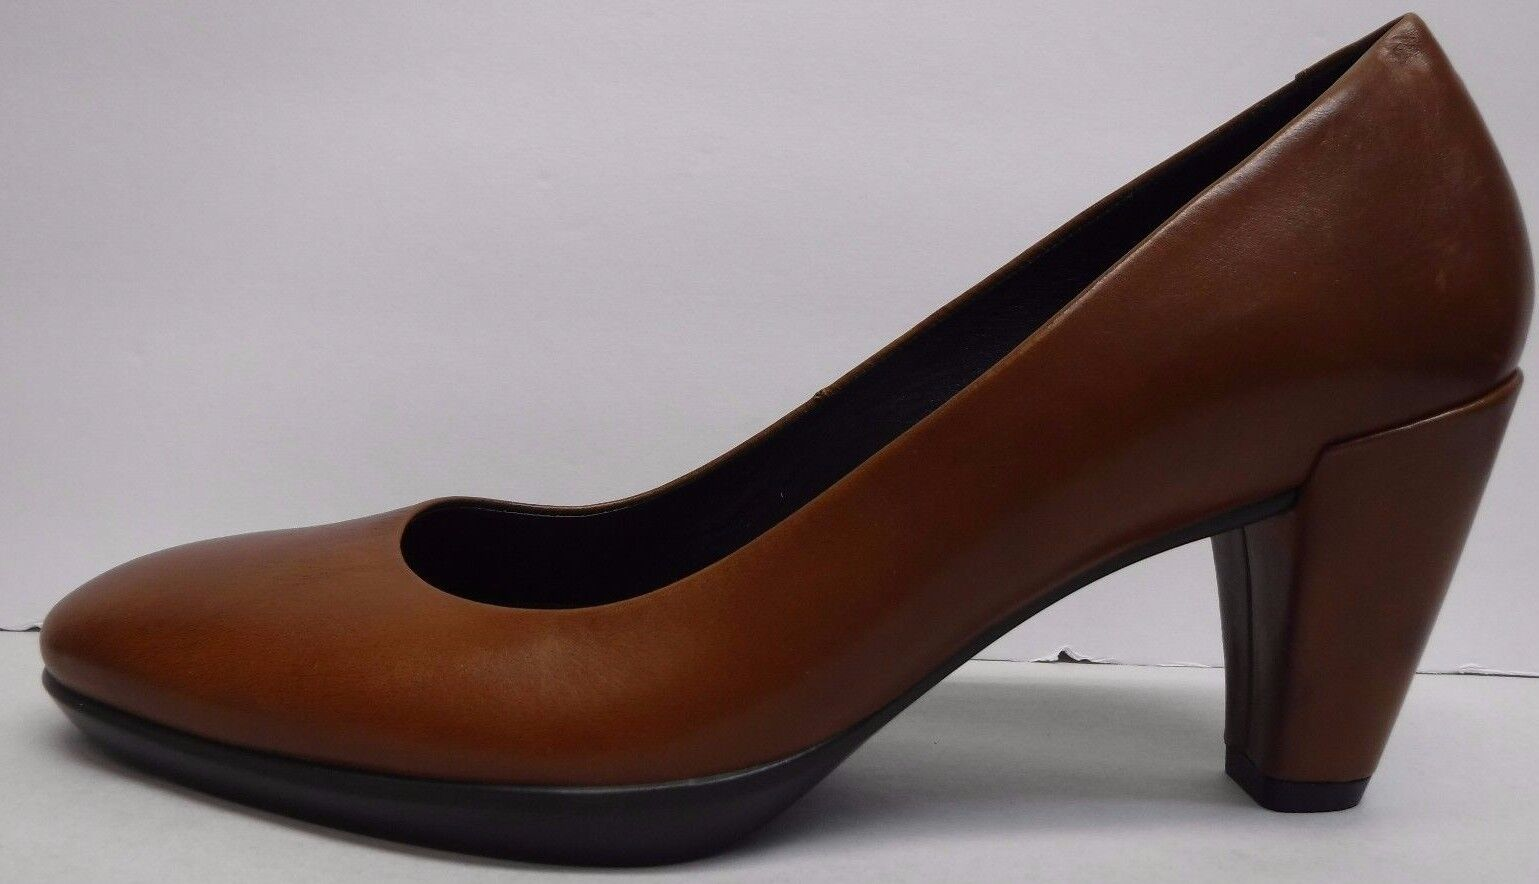 Ecco Size Size Size EUR 37 US 6 6.5 Brown Leather Pumps New Womens shoes 6283f6